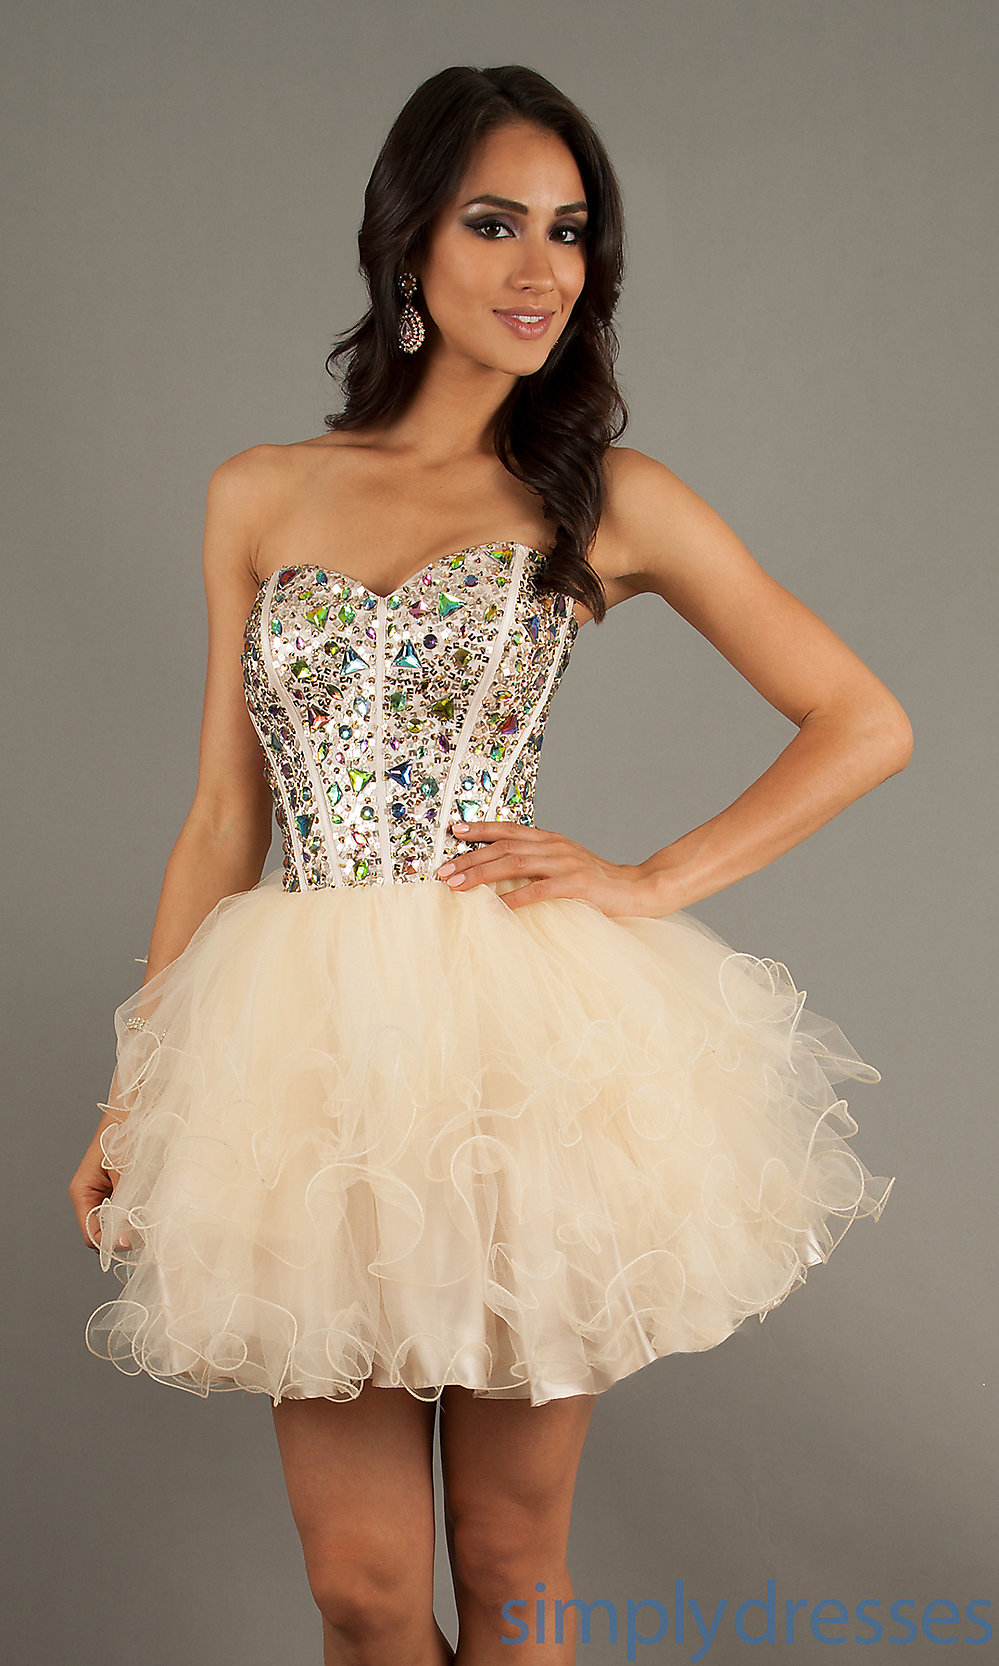 blush BL-9653 For Cheap, blush Strapless dress Collection Online